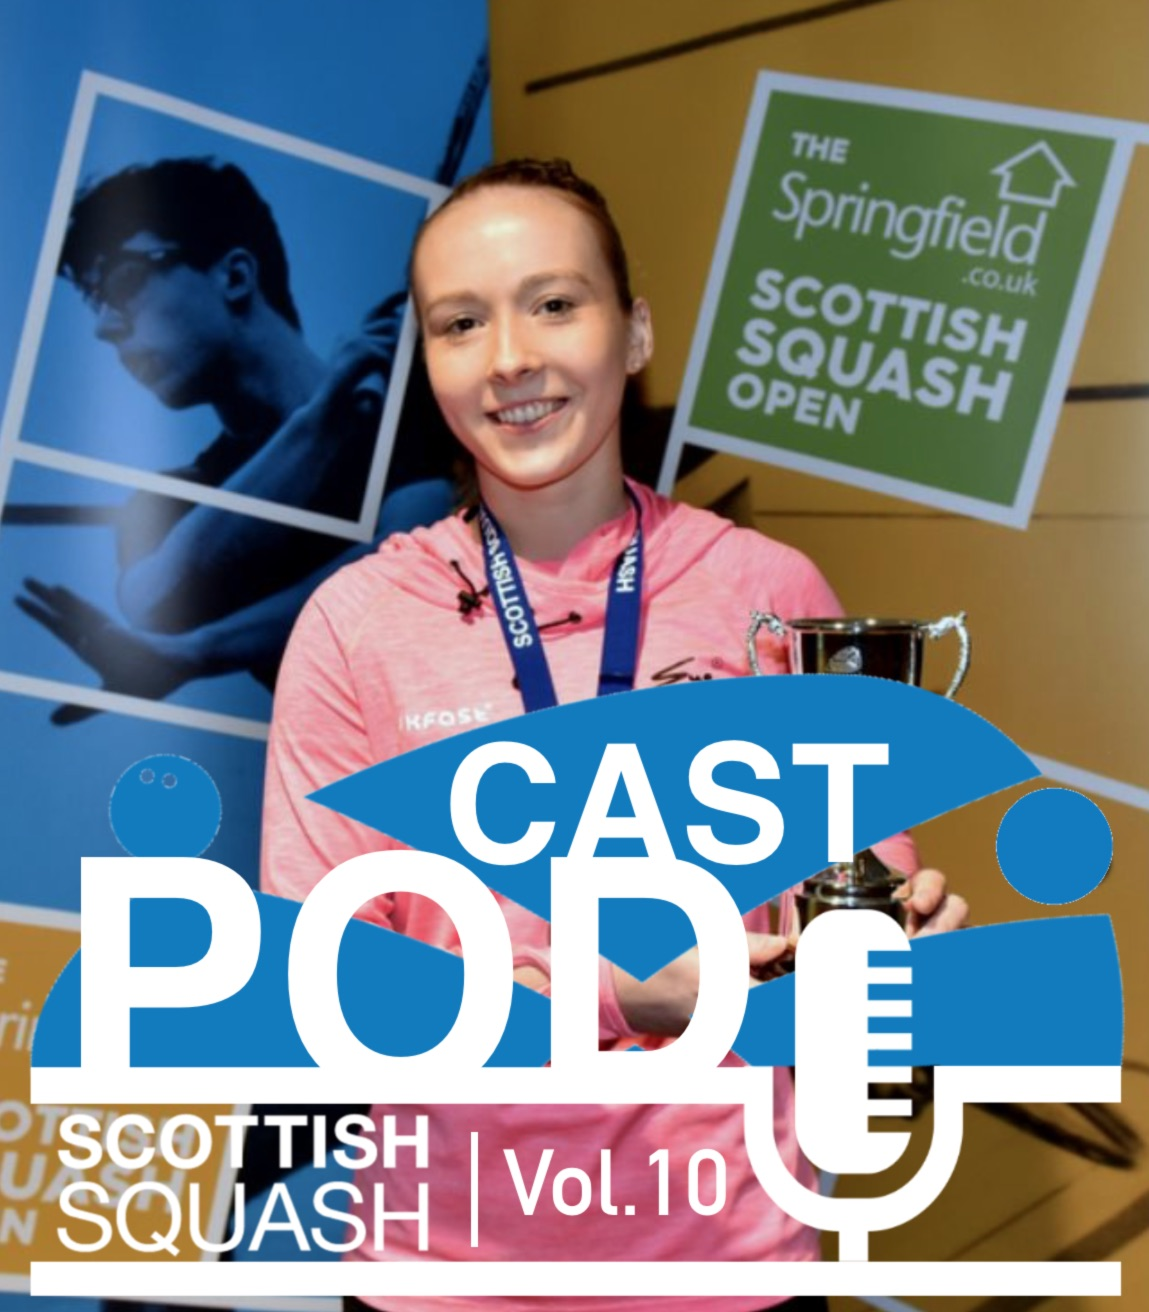 Scottish Squash Podcast - Vol.10 - Springfield SS Open Review